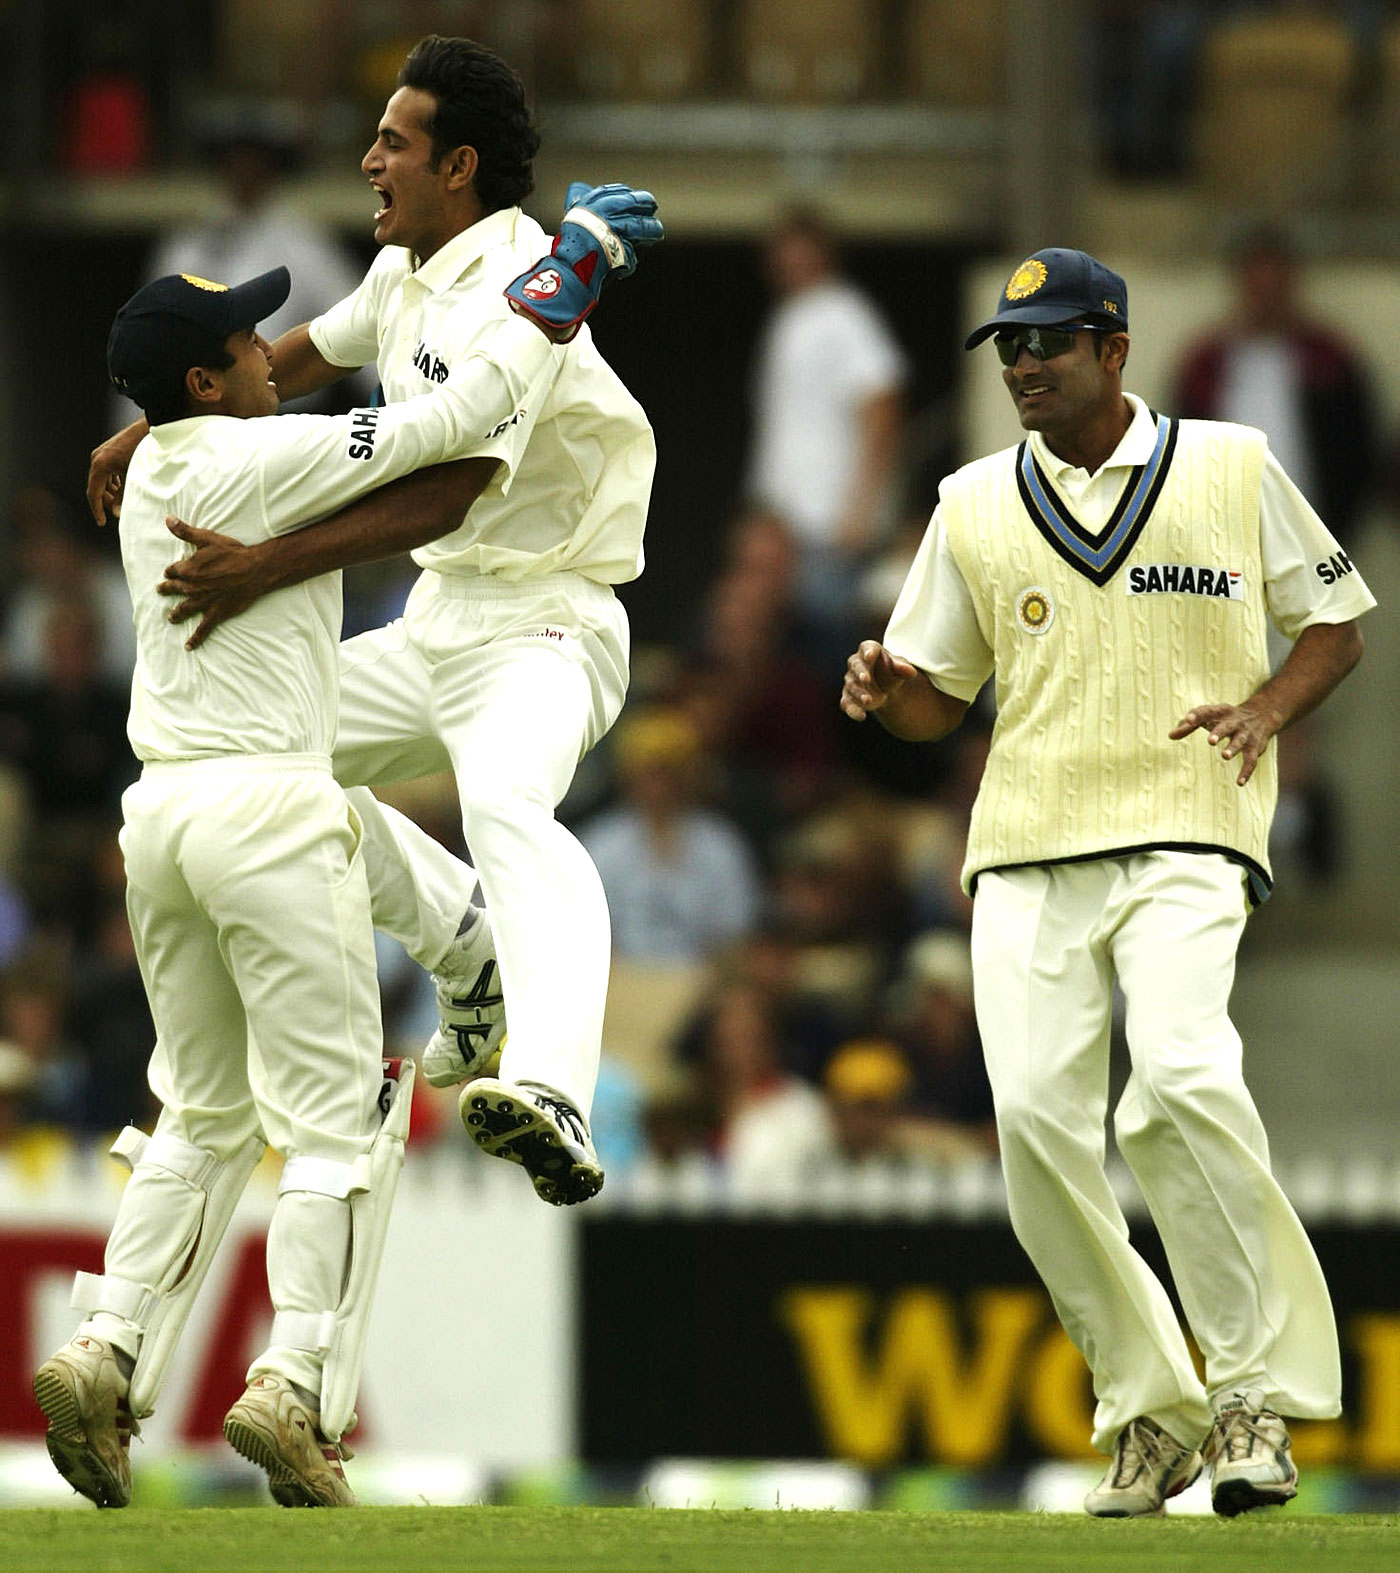 That was easy: Irfan Pathan, only 19, struck with his third ball in Test cricket, sending back